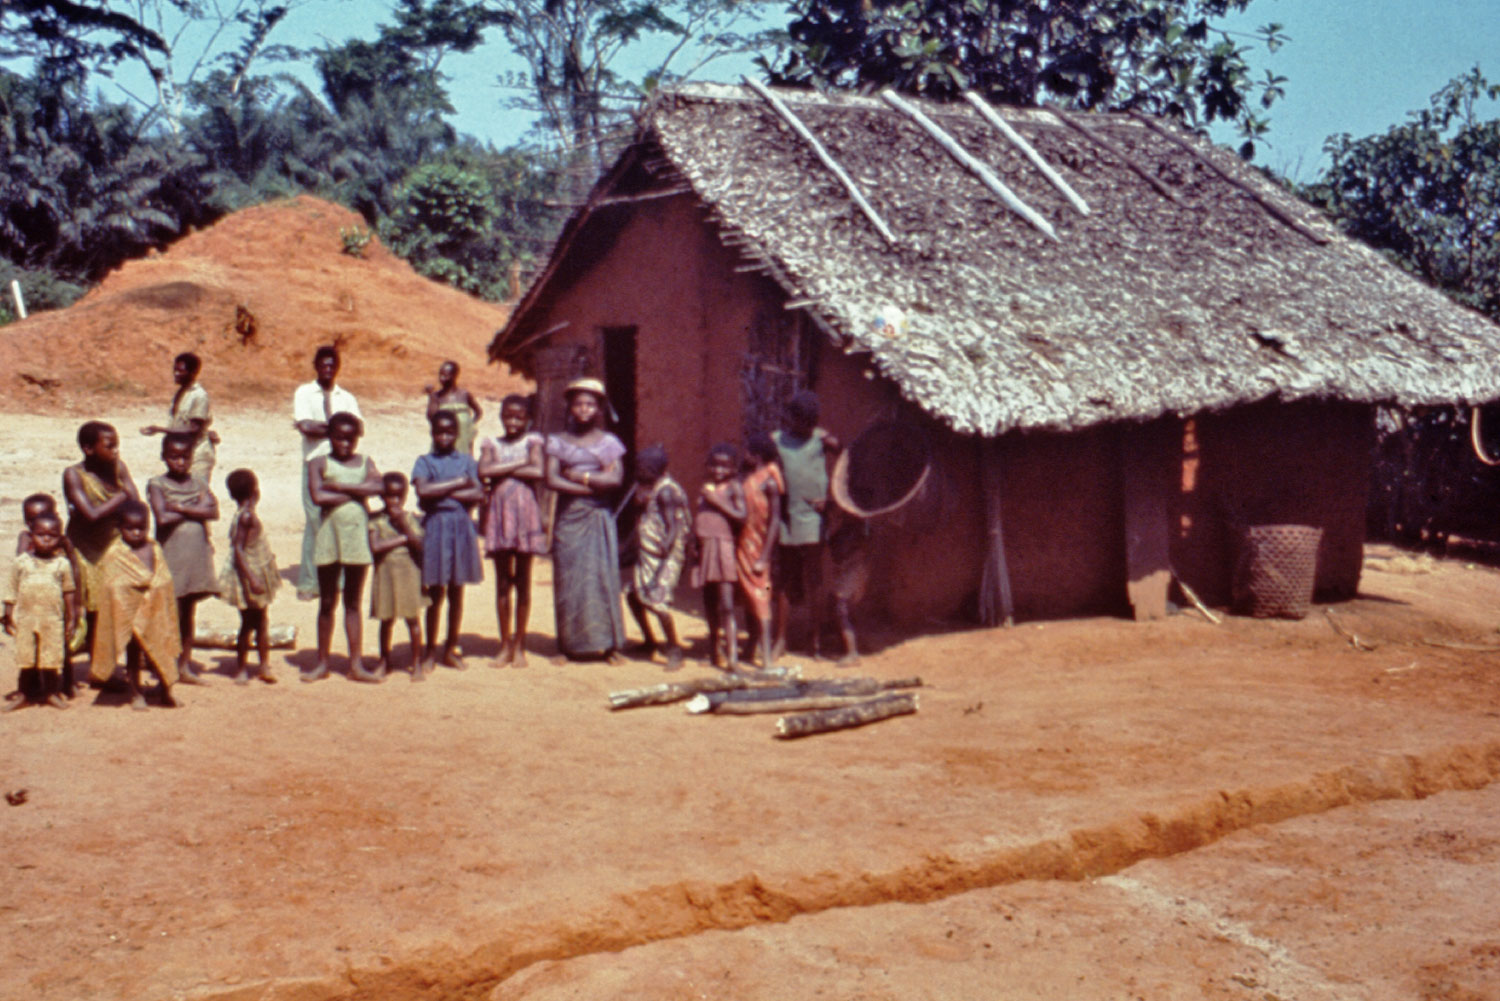 Photo of a community in Yambuku, Zaire (now Democratic Republic of Congo), waiting in line to be examined by U.S. Centers for Disease Control and Prevention (CDC) officers during 1976 Ebola outbreak.